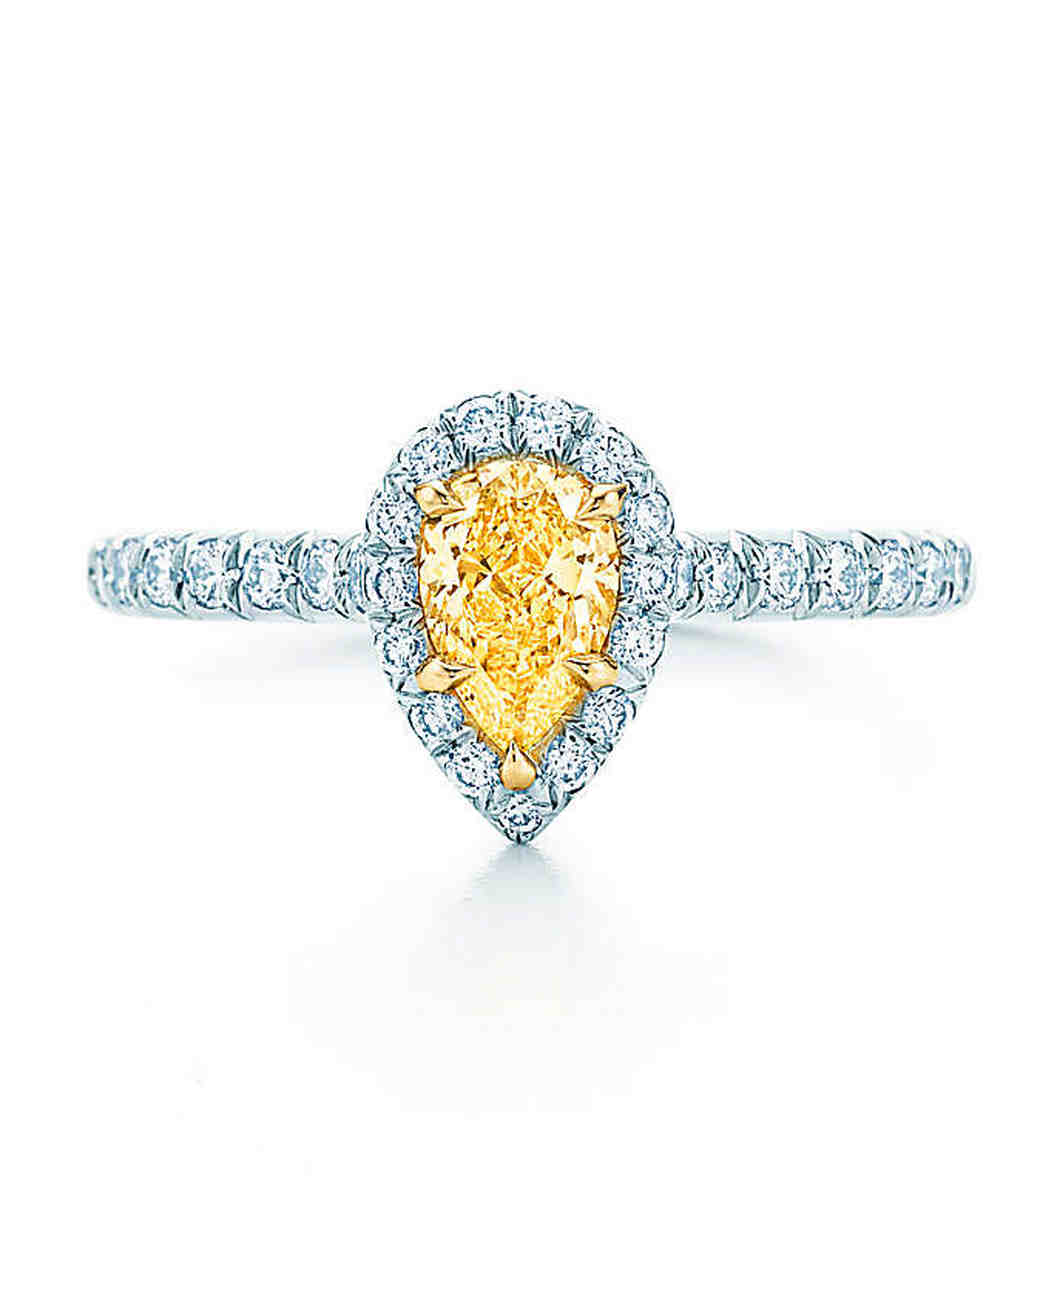 Tiffany & Co. Pear-Cut Engagement Ring